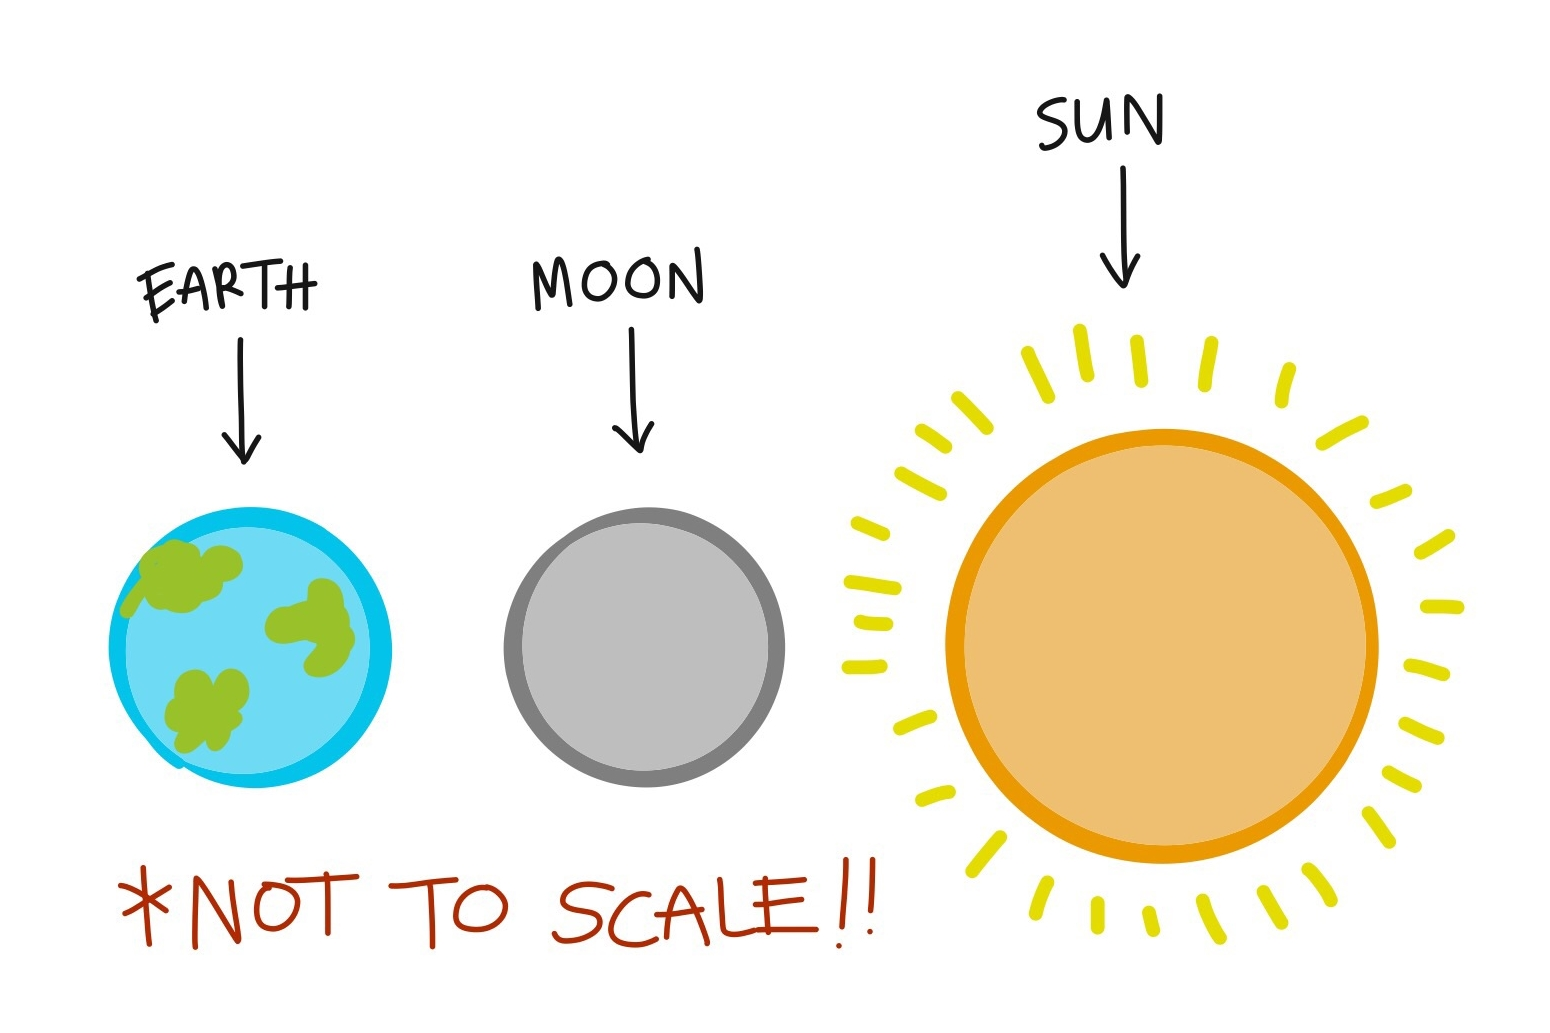 Without the note on scale, someone looking at a drawing of the earth, moon, and sun for the first time could think they're all nearly the same size and VERY close together.